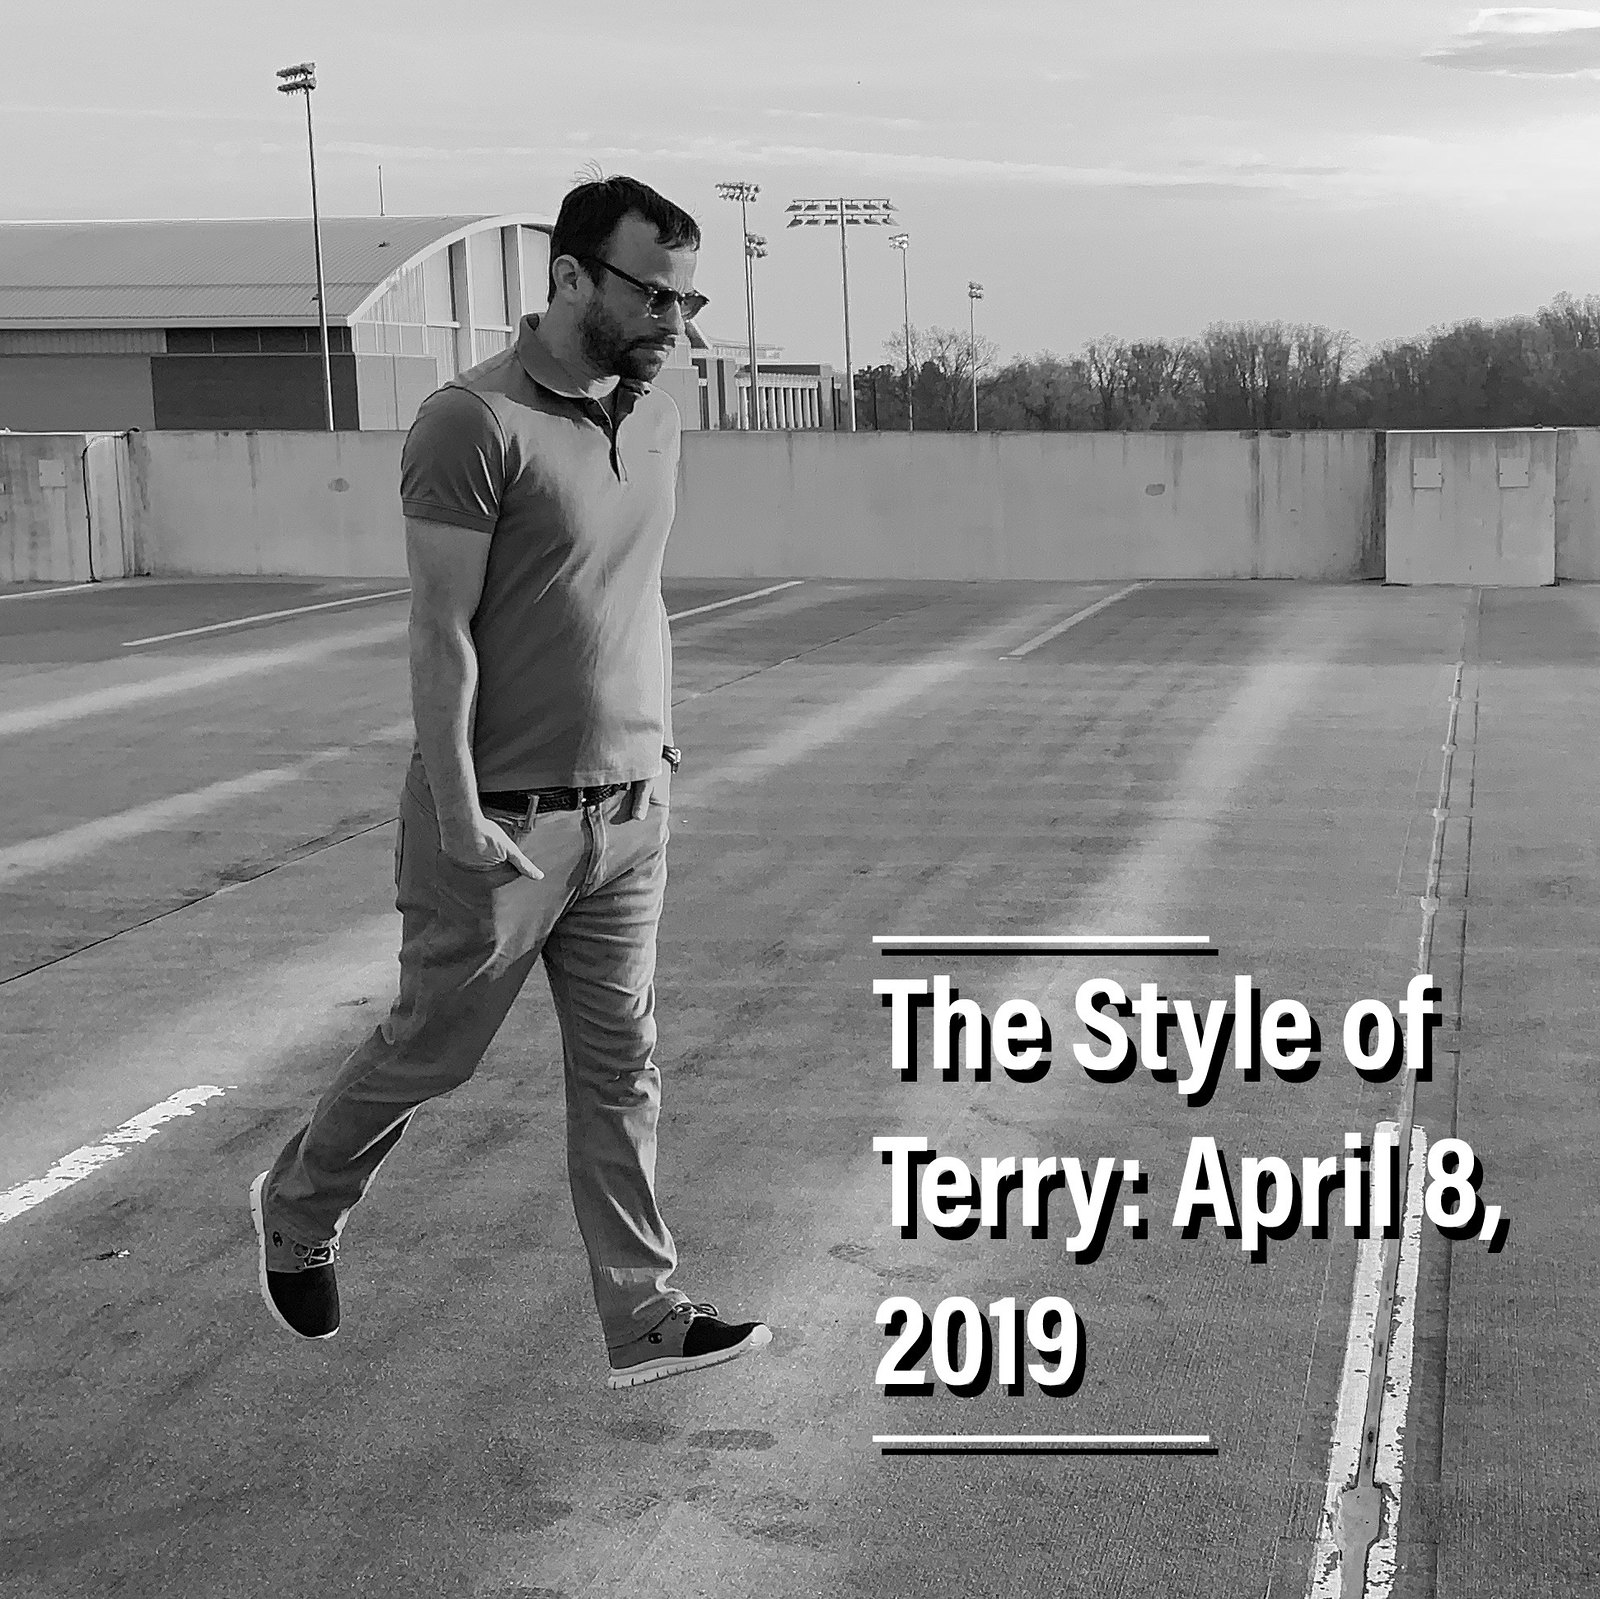 The Style of Terry: 4.8.19